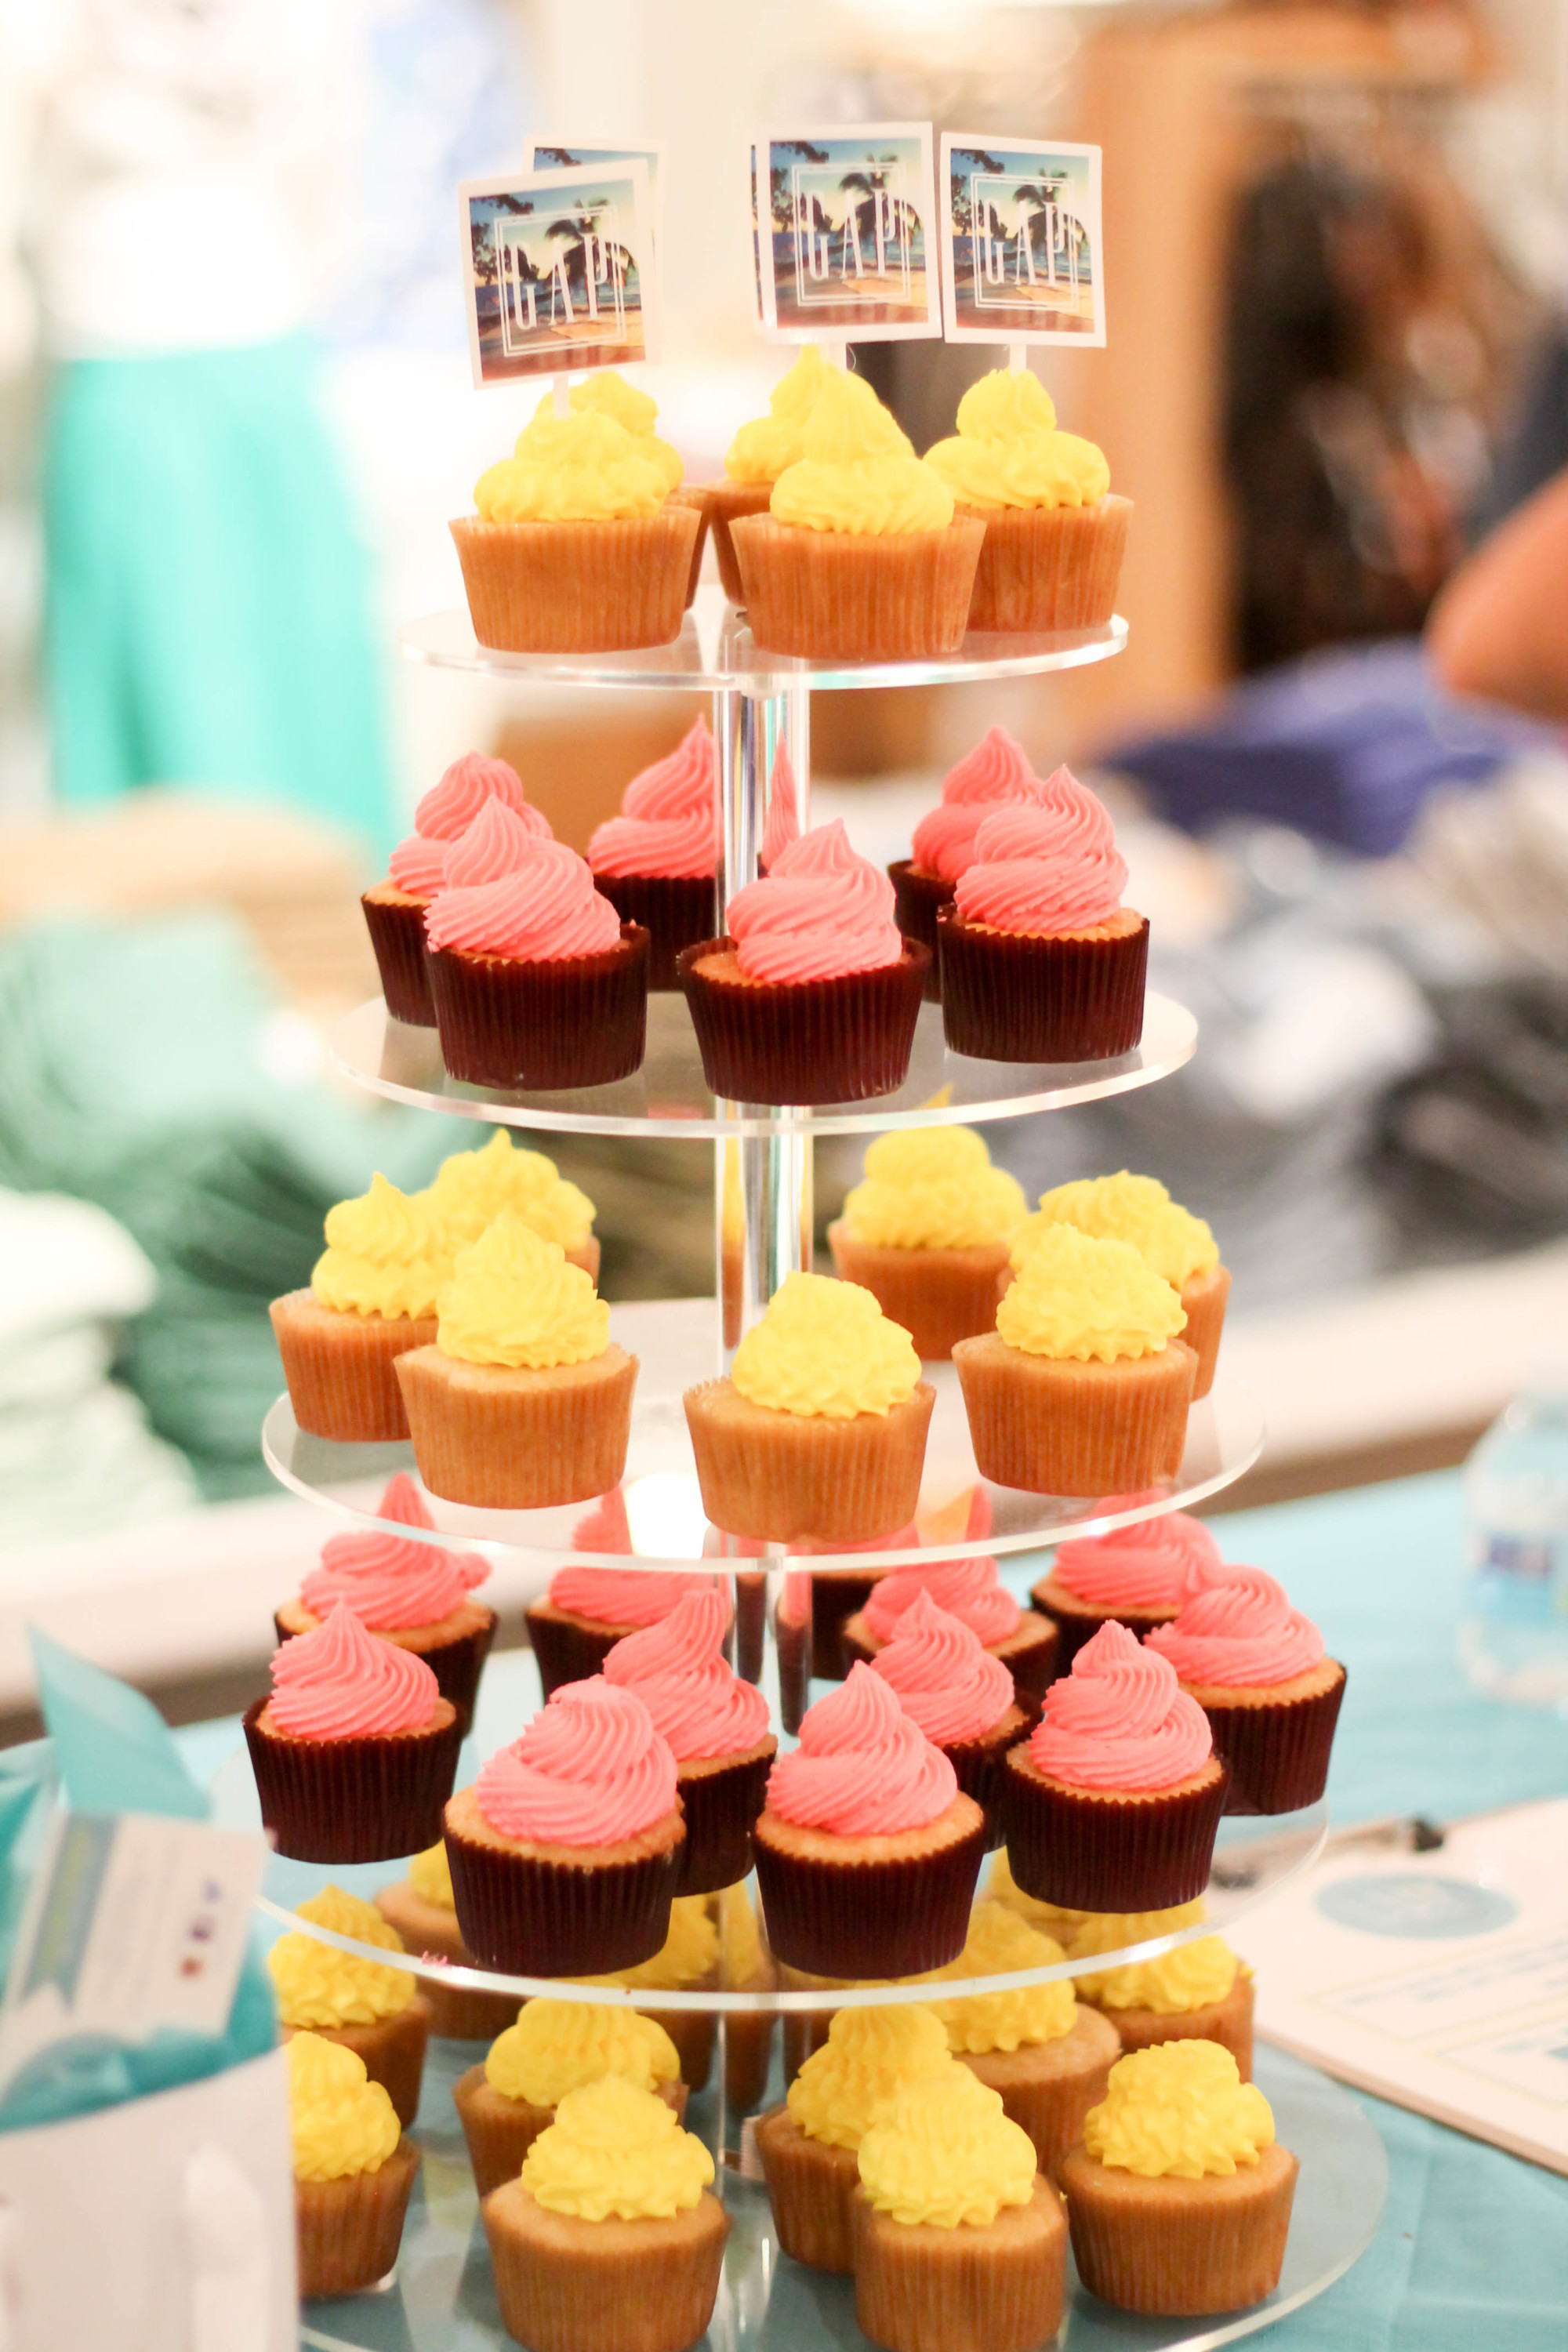 Gap Styld By Event Aventura (1 of 14)